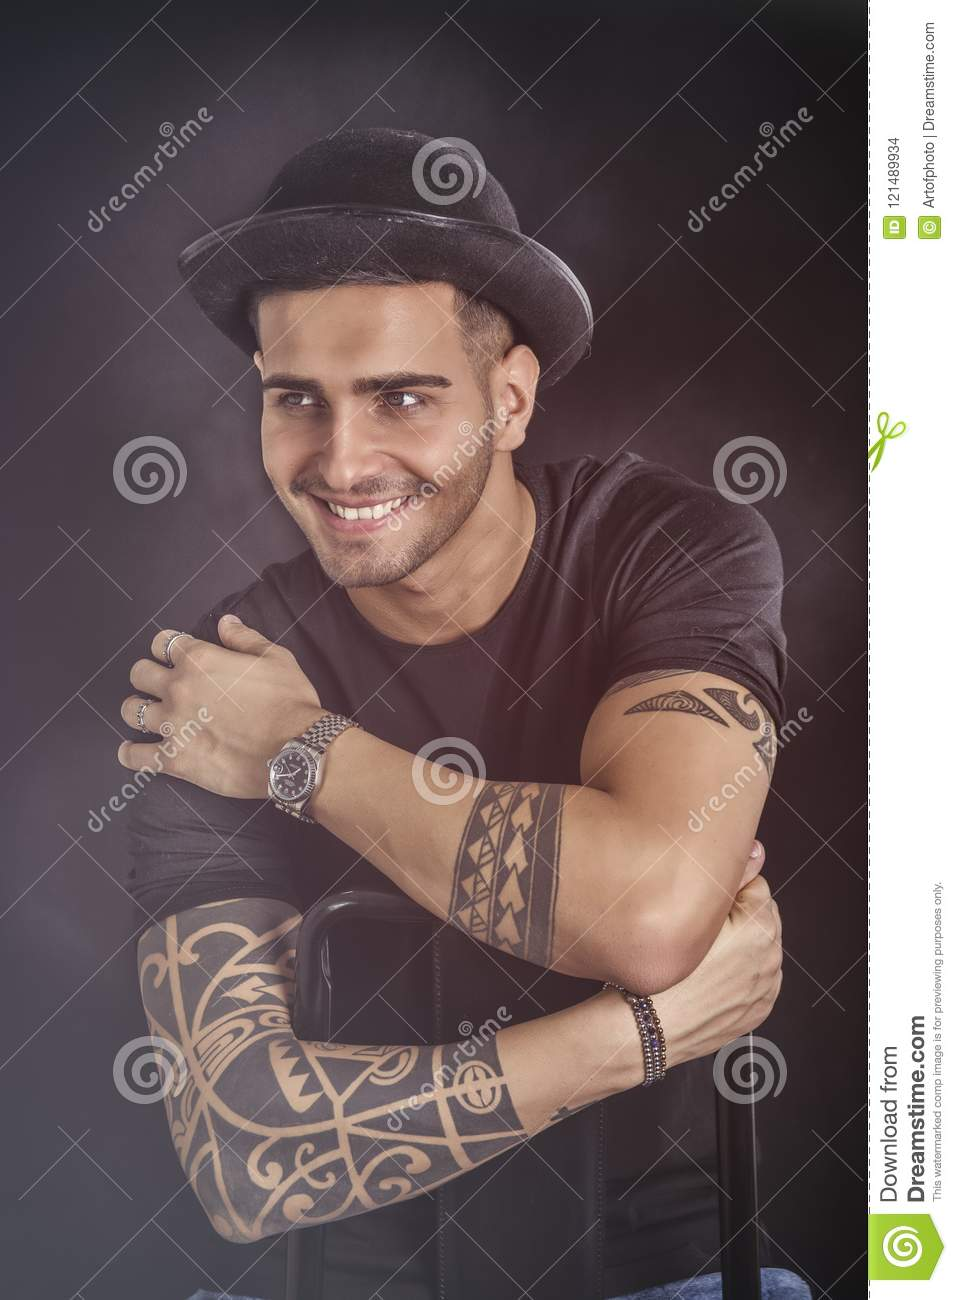 04086067e99 Handsome and stylish young man with black bowler hat and t-shirt. Cool  tattoos on arms